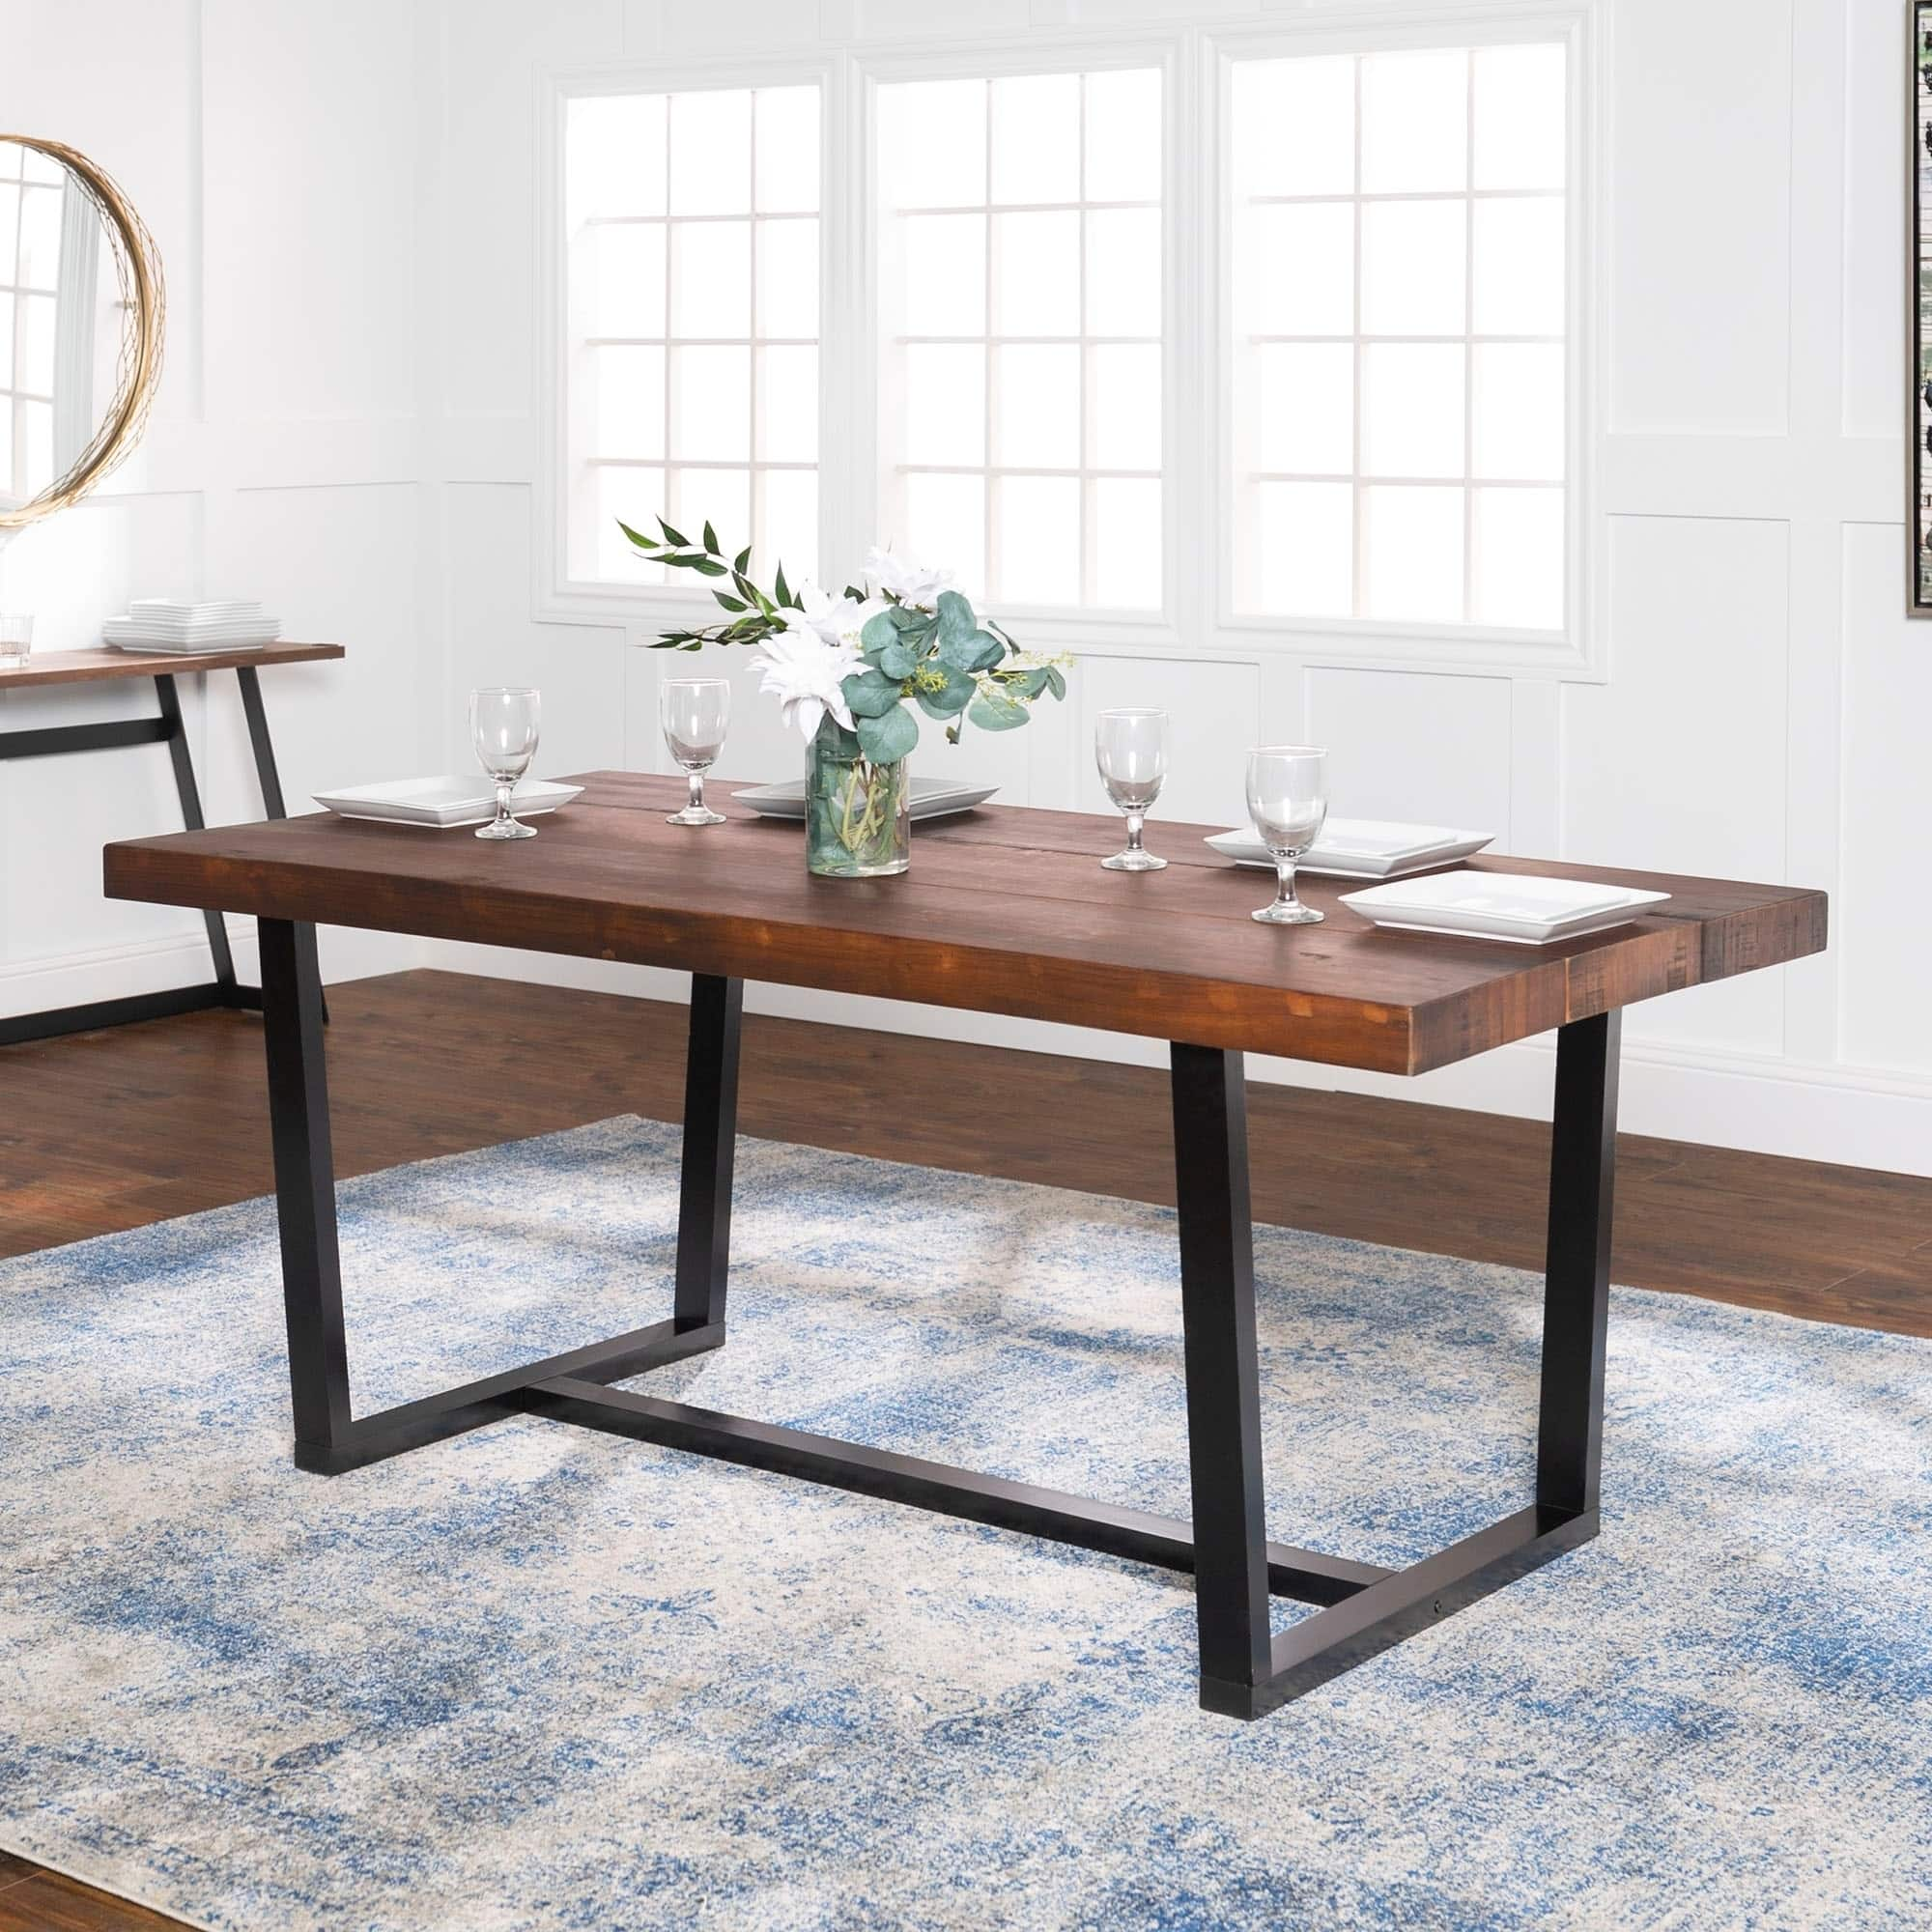 Best Place To Buy Dining Room Furniture: Buy Kitchen & Dining Room Tables Online At Overstock.com